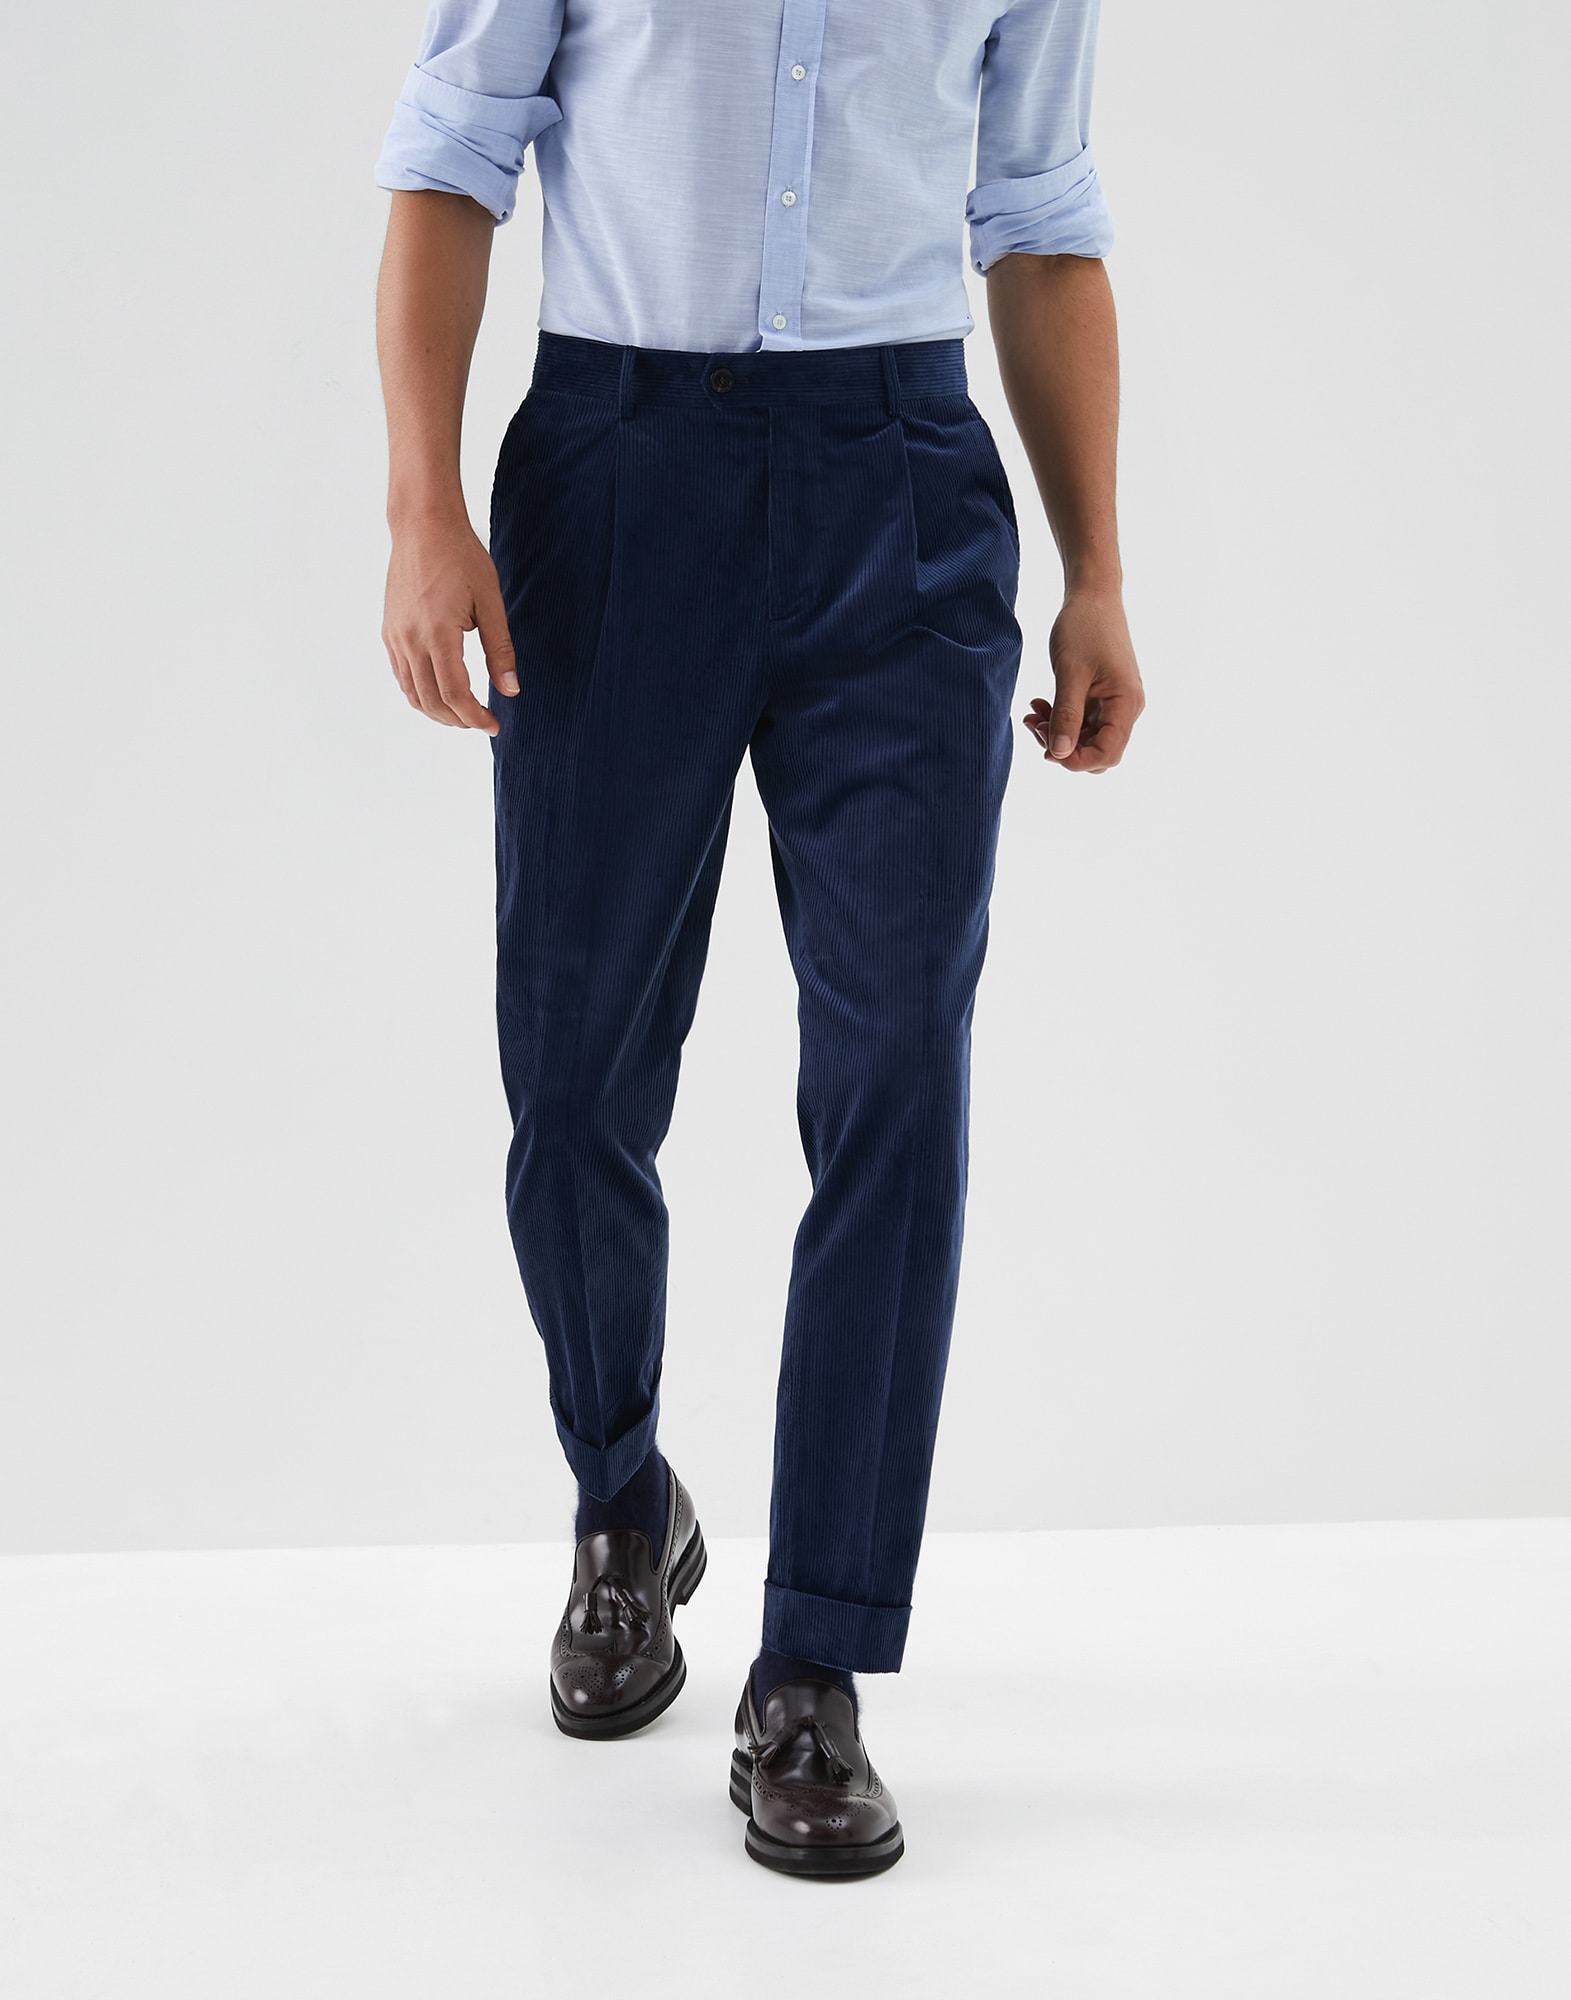 Trousers Blue Ford Man 0 - Brunello Cucinelli